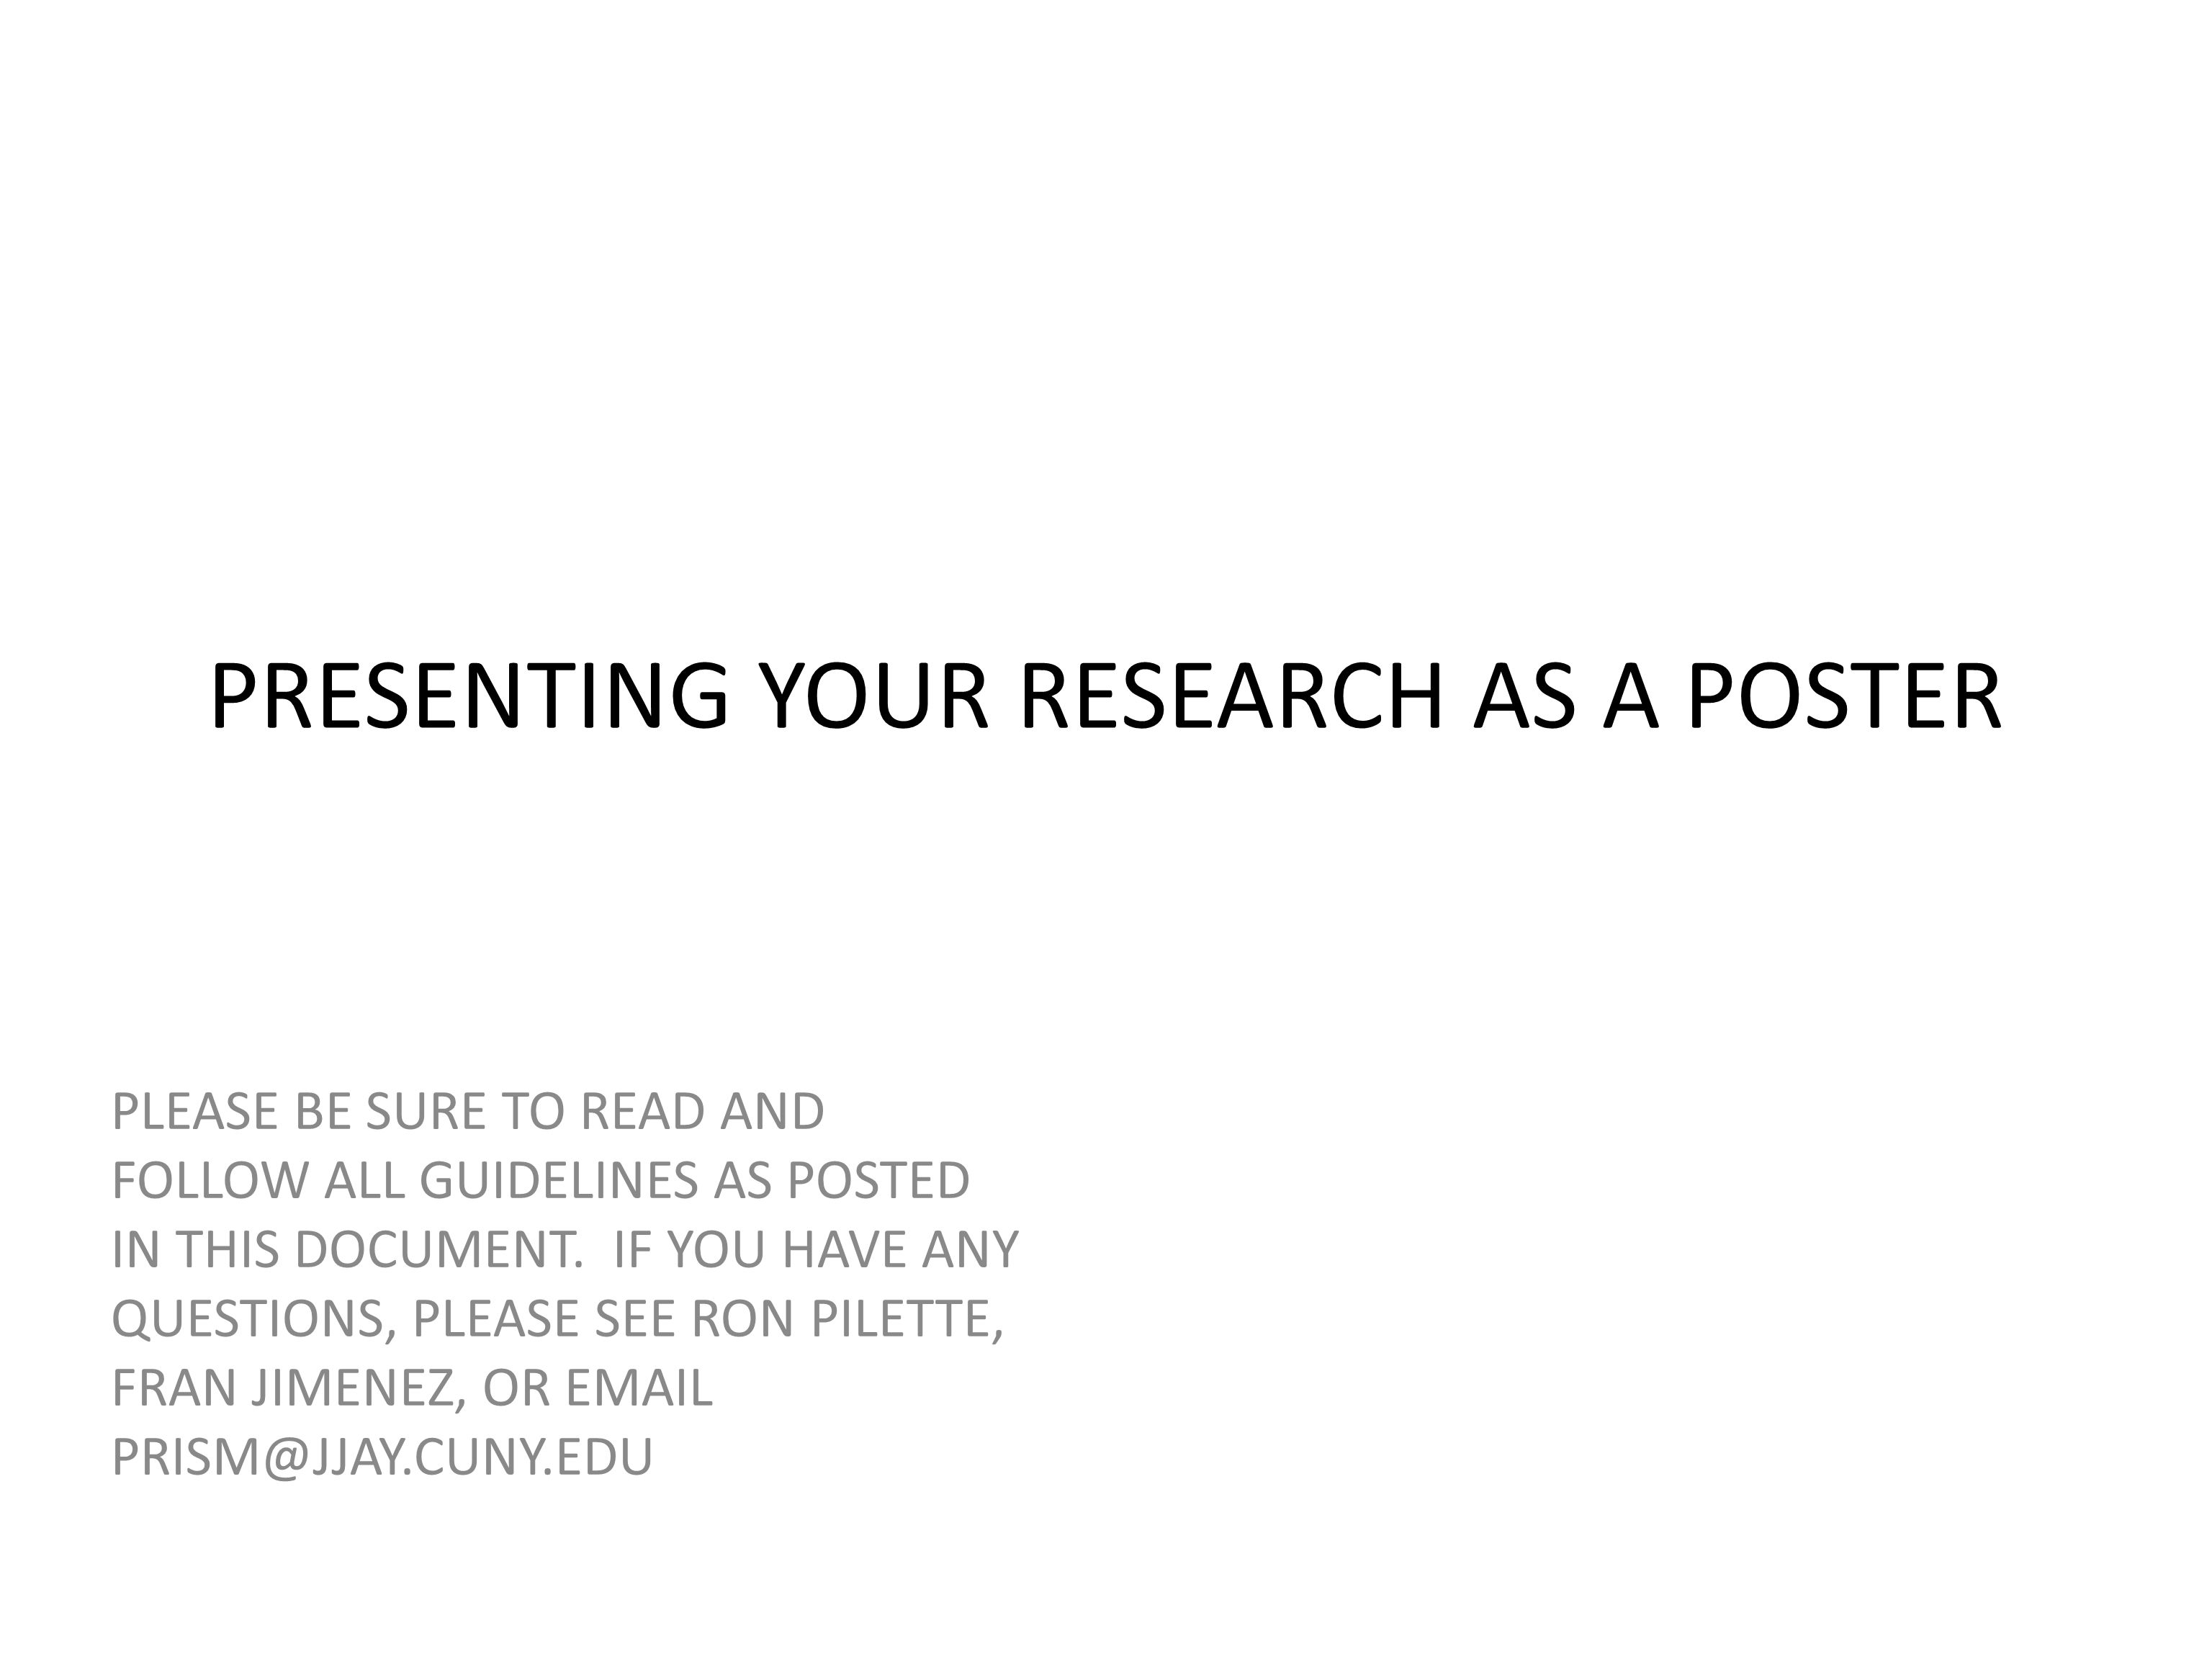 PRESENTING YOUR RESEARCH AS A POSTER PLEASE BE SURE TO READ AND FOLLOW ALL GUIDELINES AS POSTED IN THIS DOCUMENT. IF YOU HAVE ANY QUESTIONS, PLEASE SE